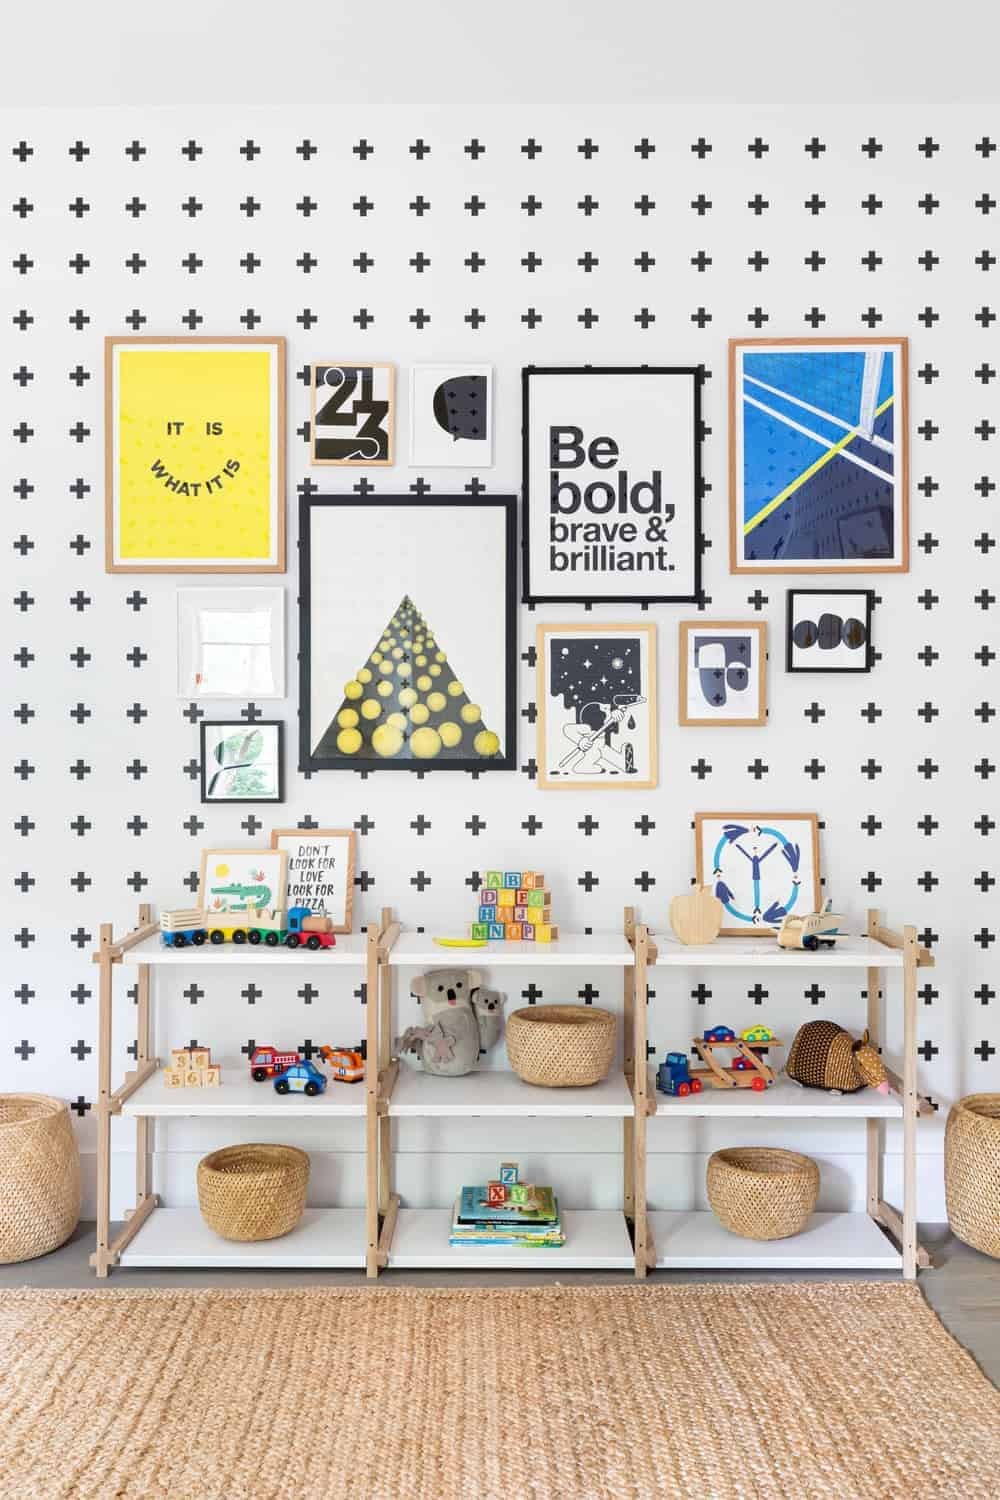 A focused look at the nursery room's multiple wall decors and freestanding short shelving.